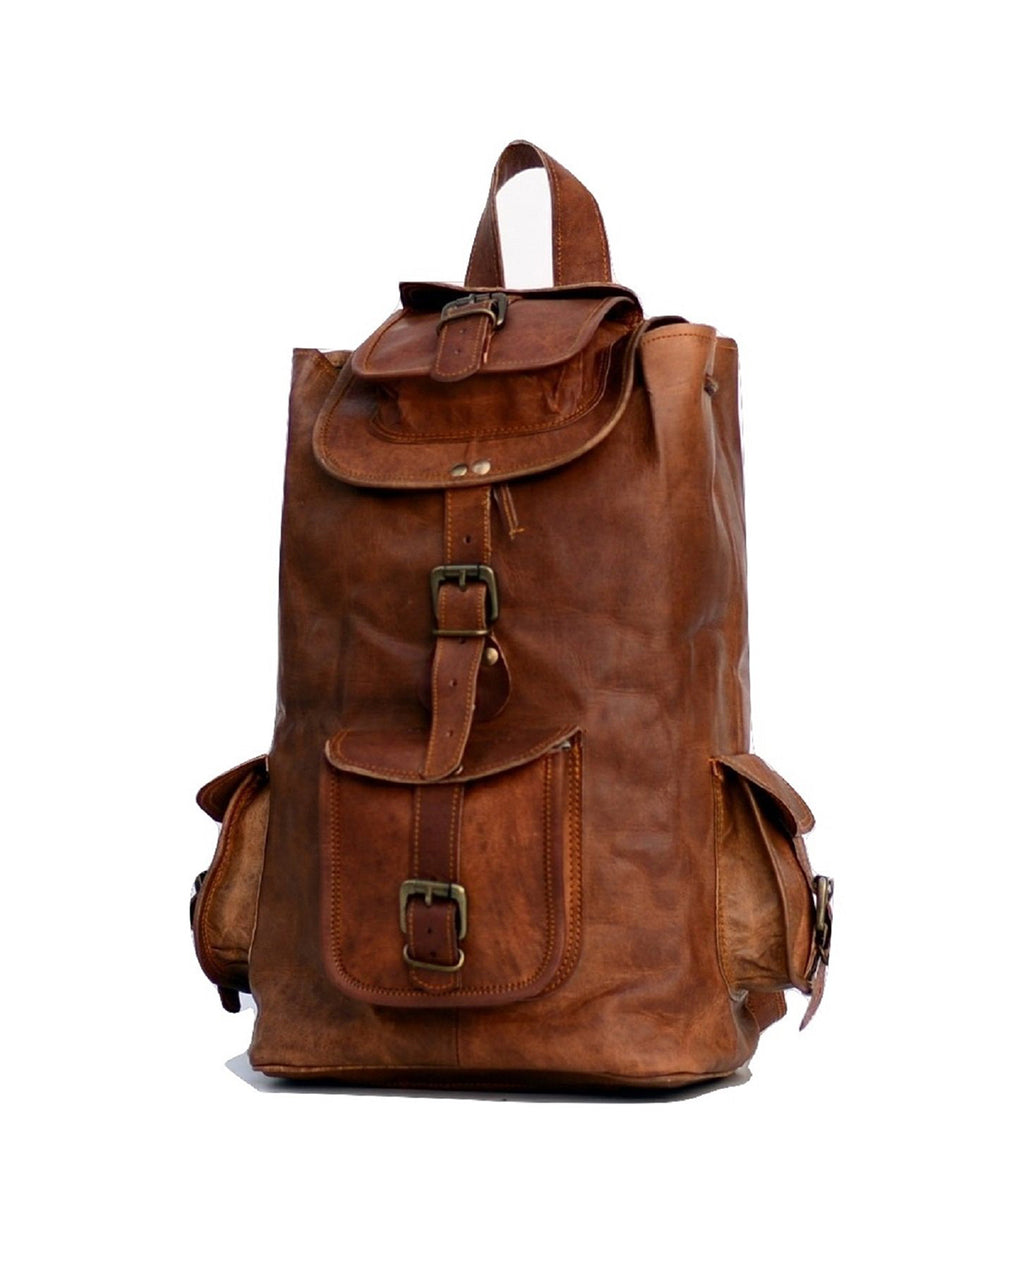 Genuine Leather Rucksack for Travel and Adventure - thar-artefacts